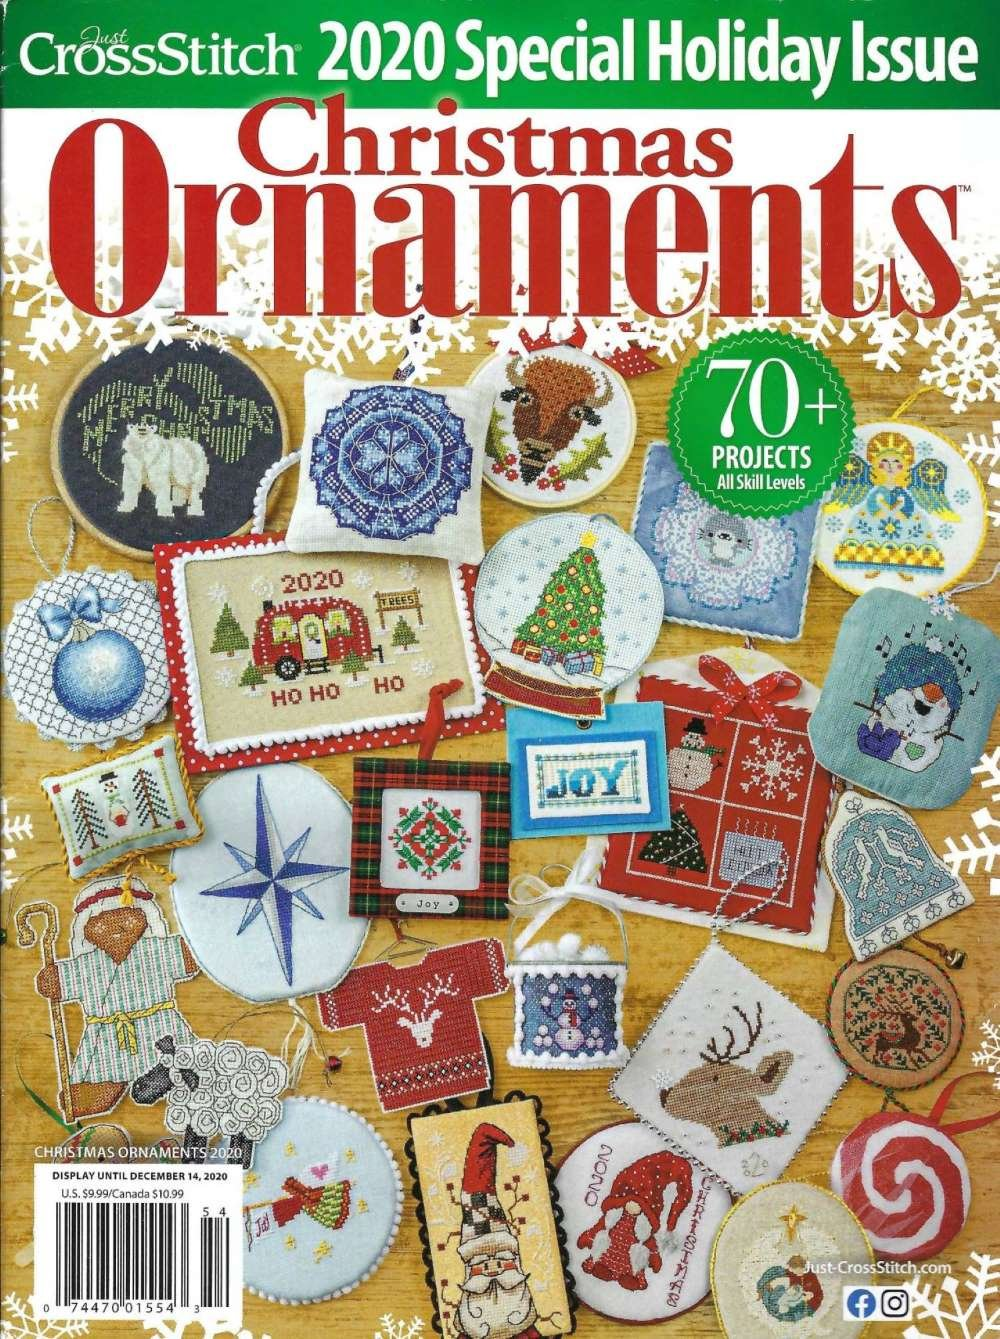 Just CrossStitch Christmas Ornaments 2020 Special Collectors Issue